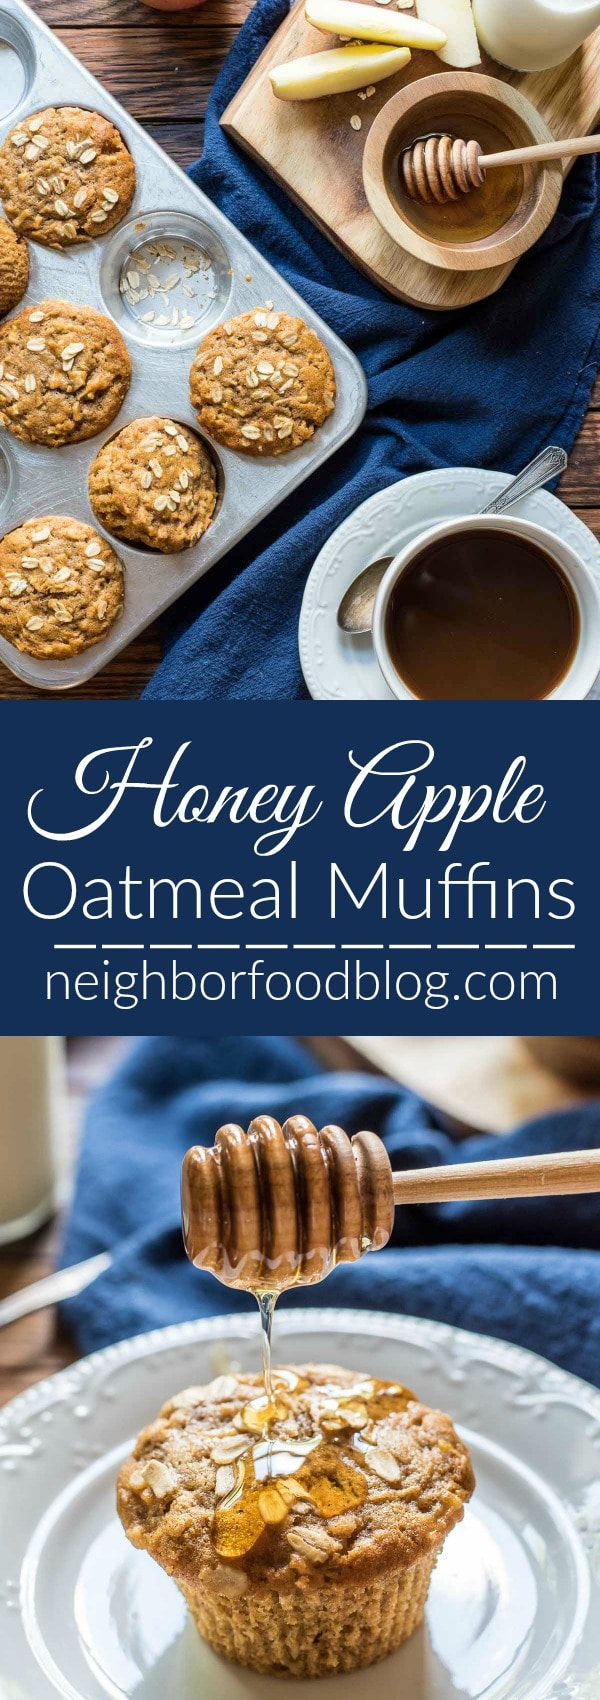 These Apple Oatmeal Muffins are spiced with cinnamon and lightly sweetened with honey for a lovely fall breakfast. They freeze great too!